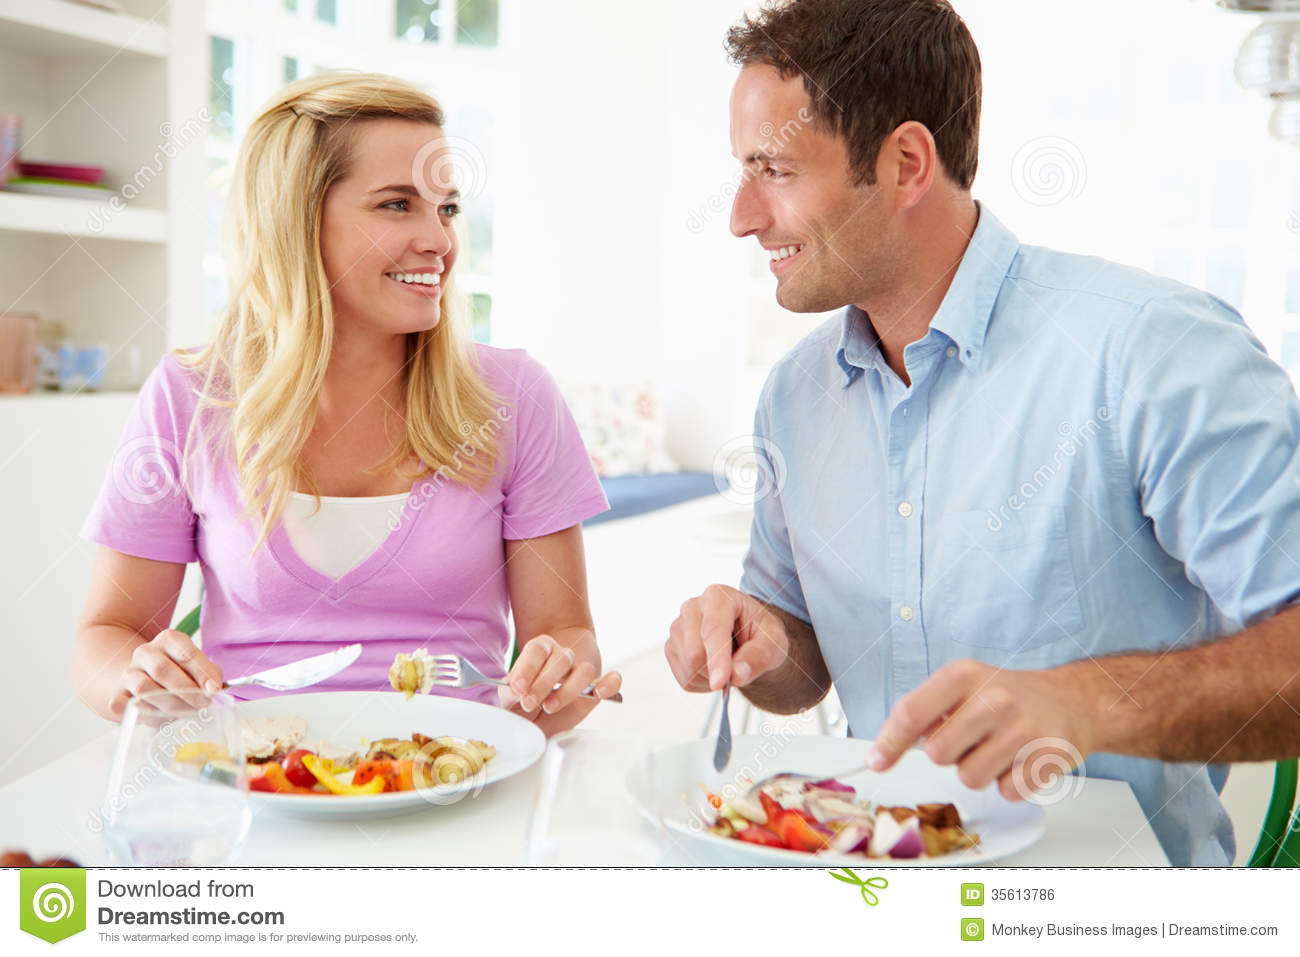 Relaxed Person Eating Food